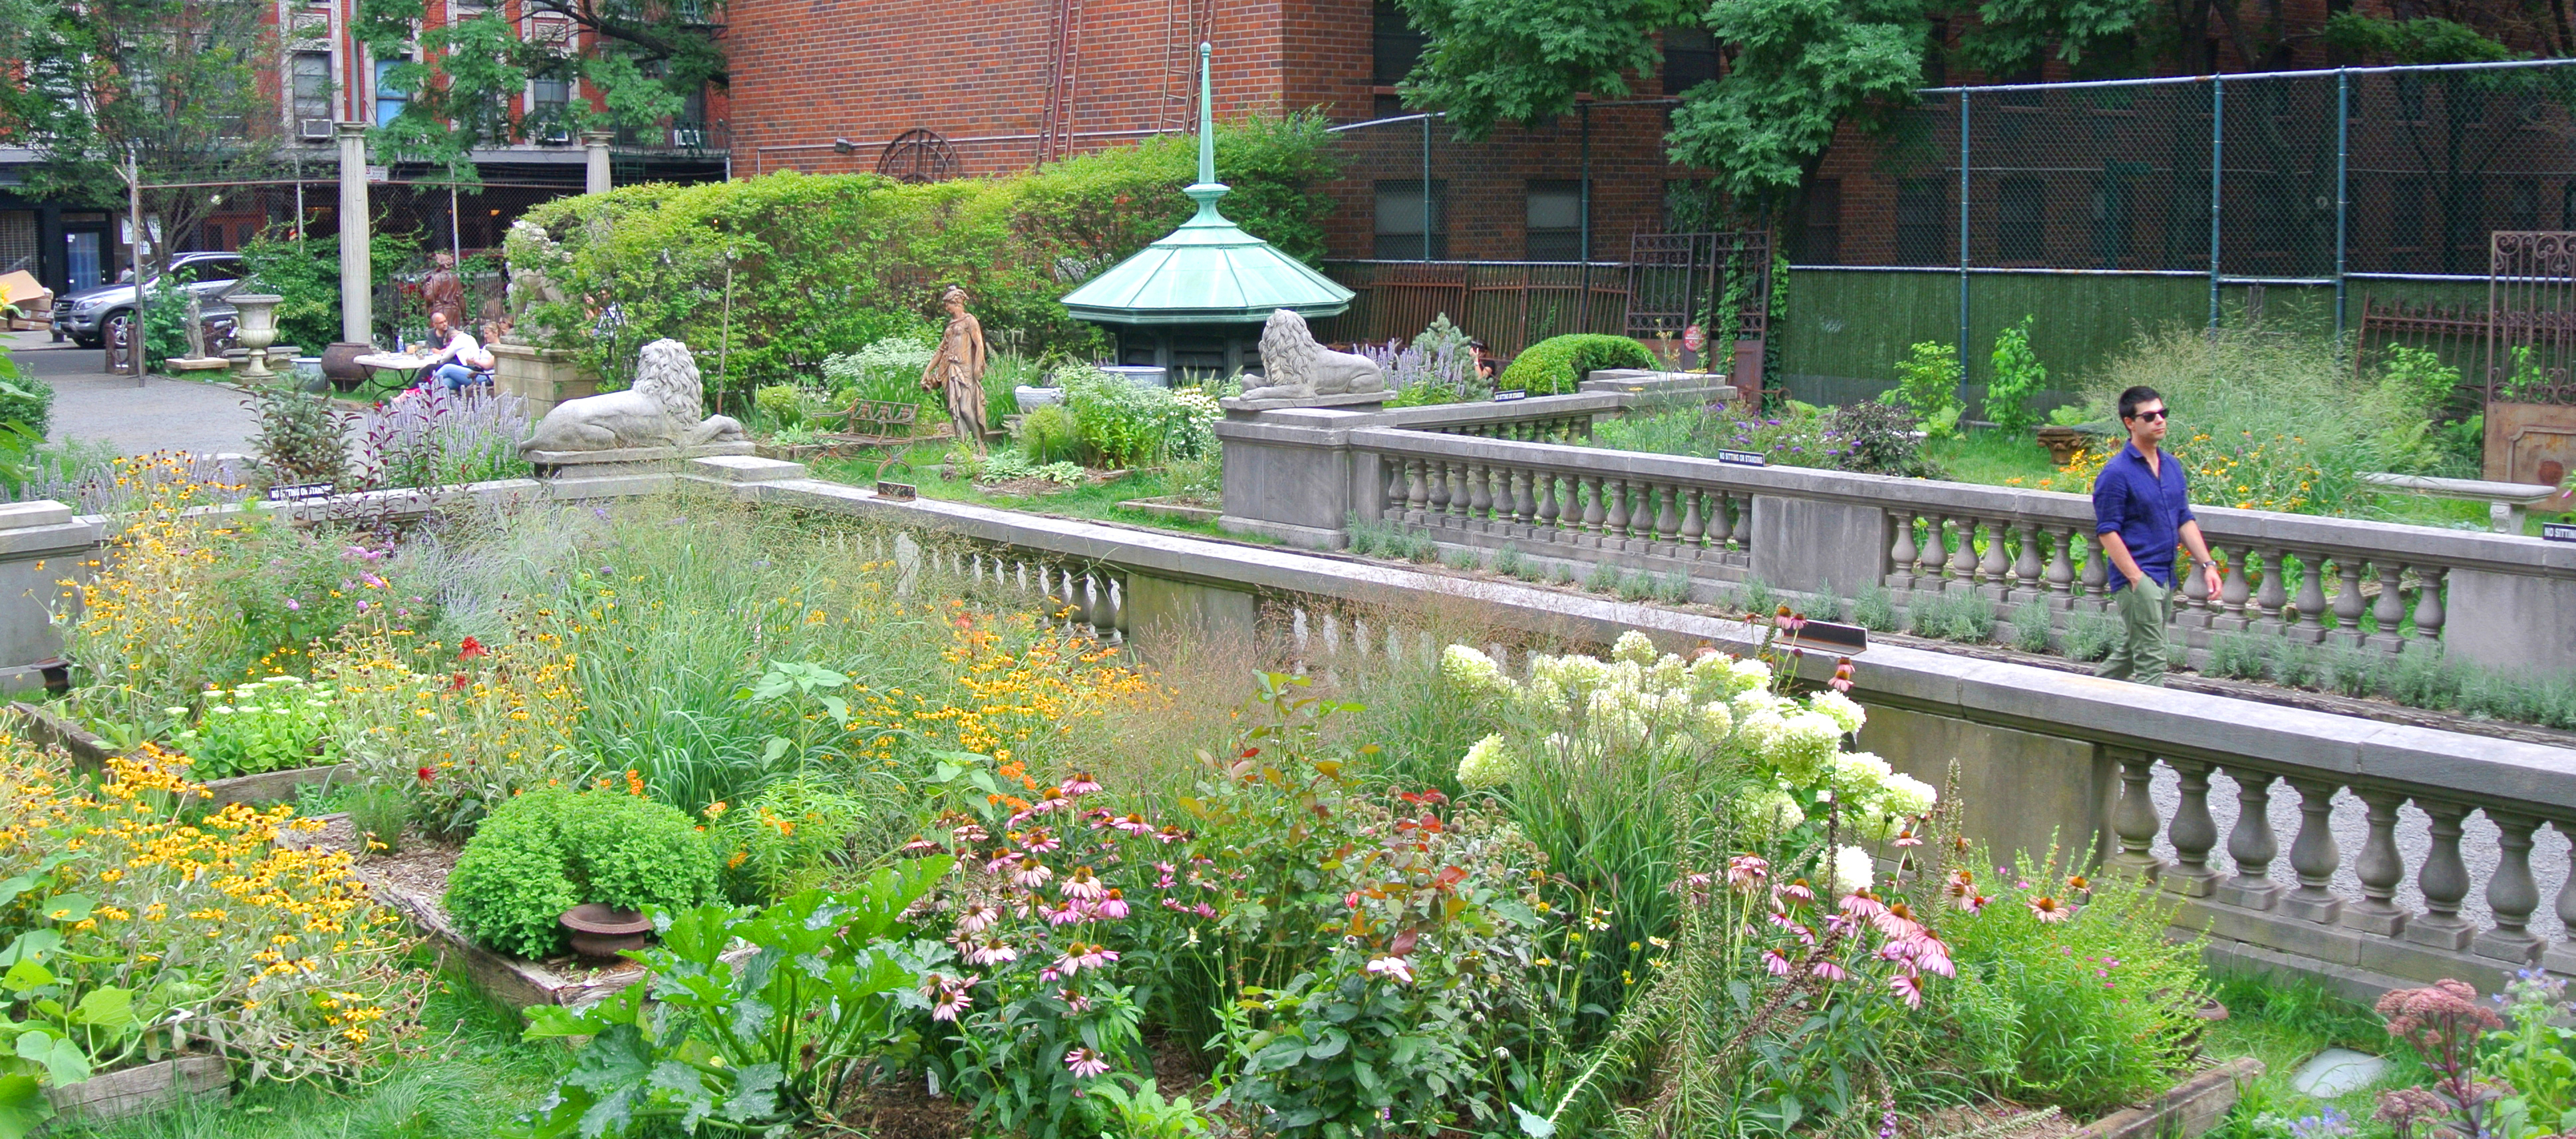 Elizabeth Street Garden. Photo: Aaron Booher/Friends of Elizabeth Street Garden.